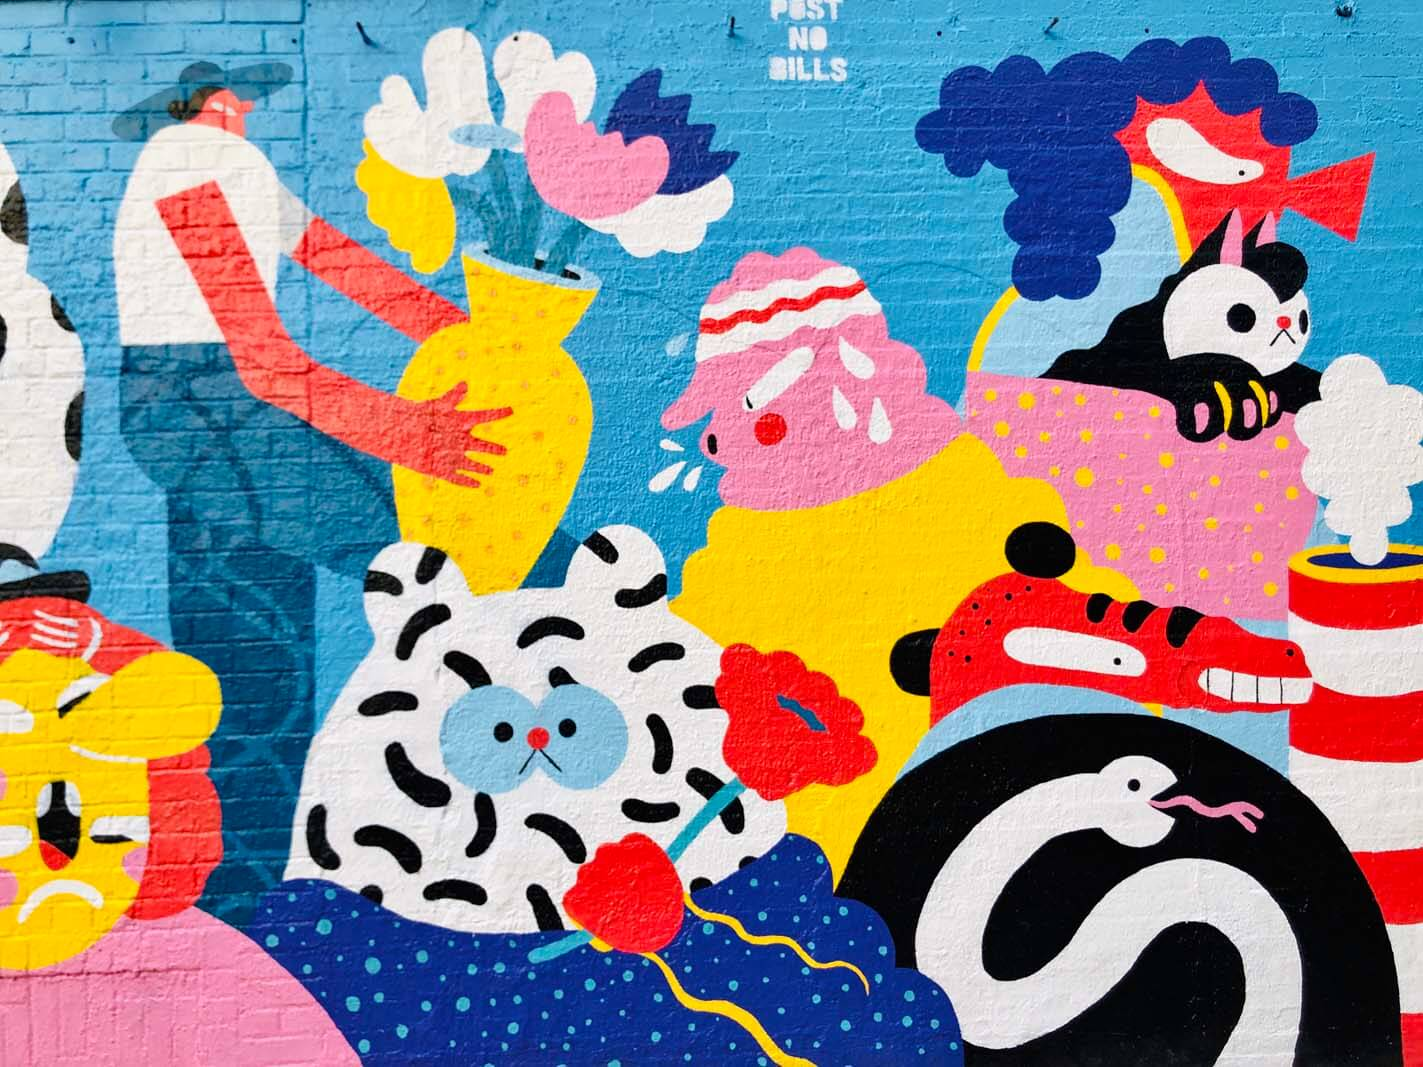 colorful mural by Brolga in Williamsburg Brooklyn